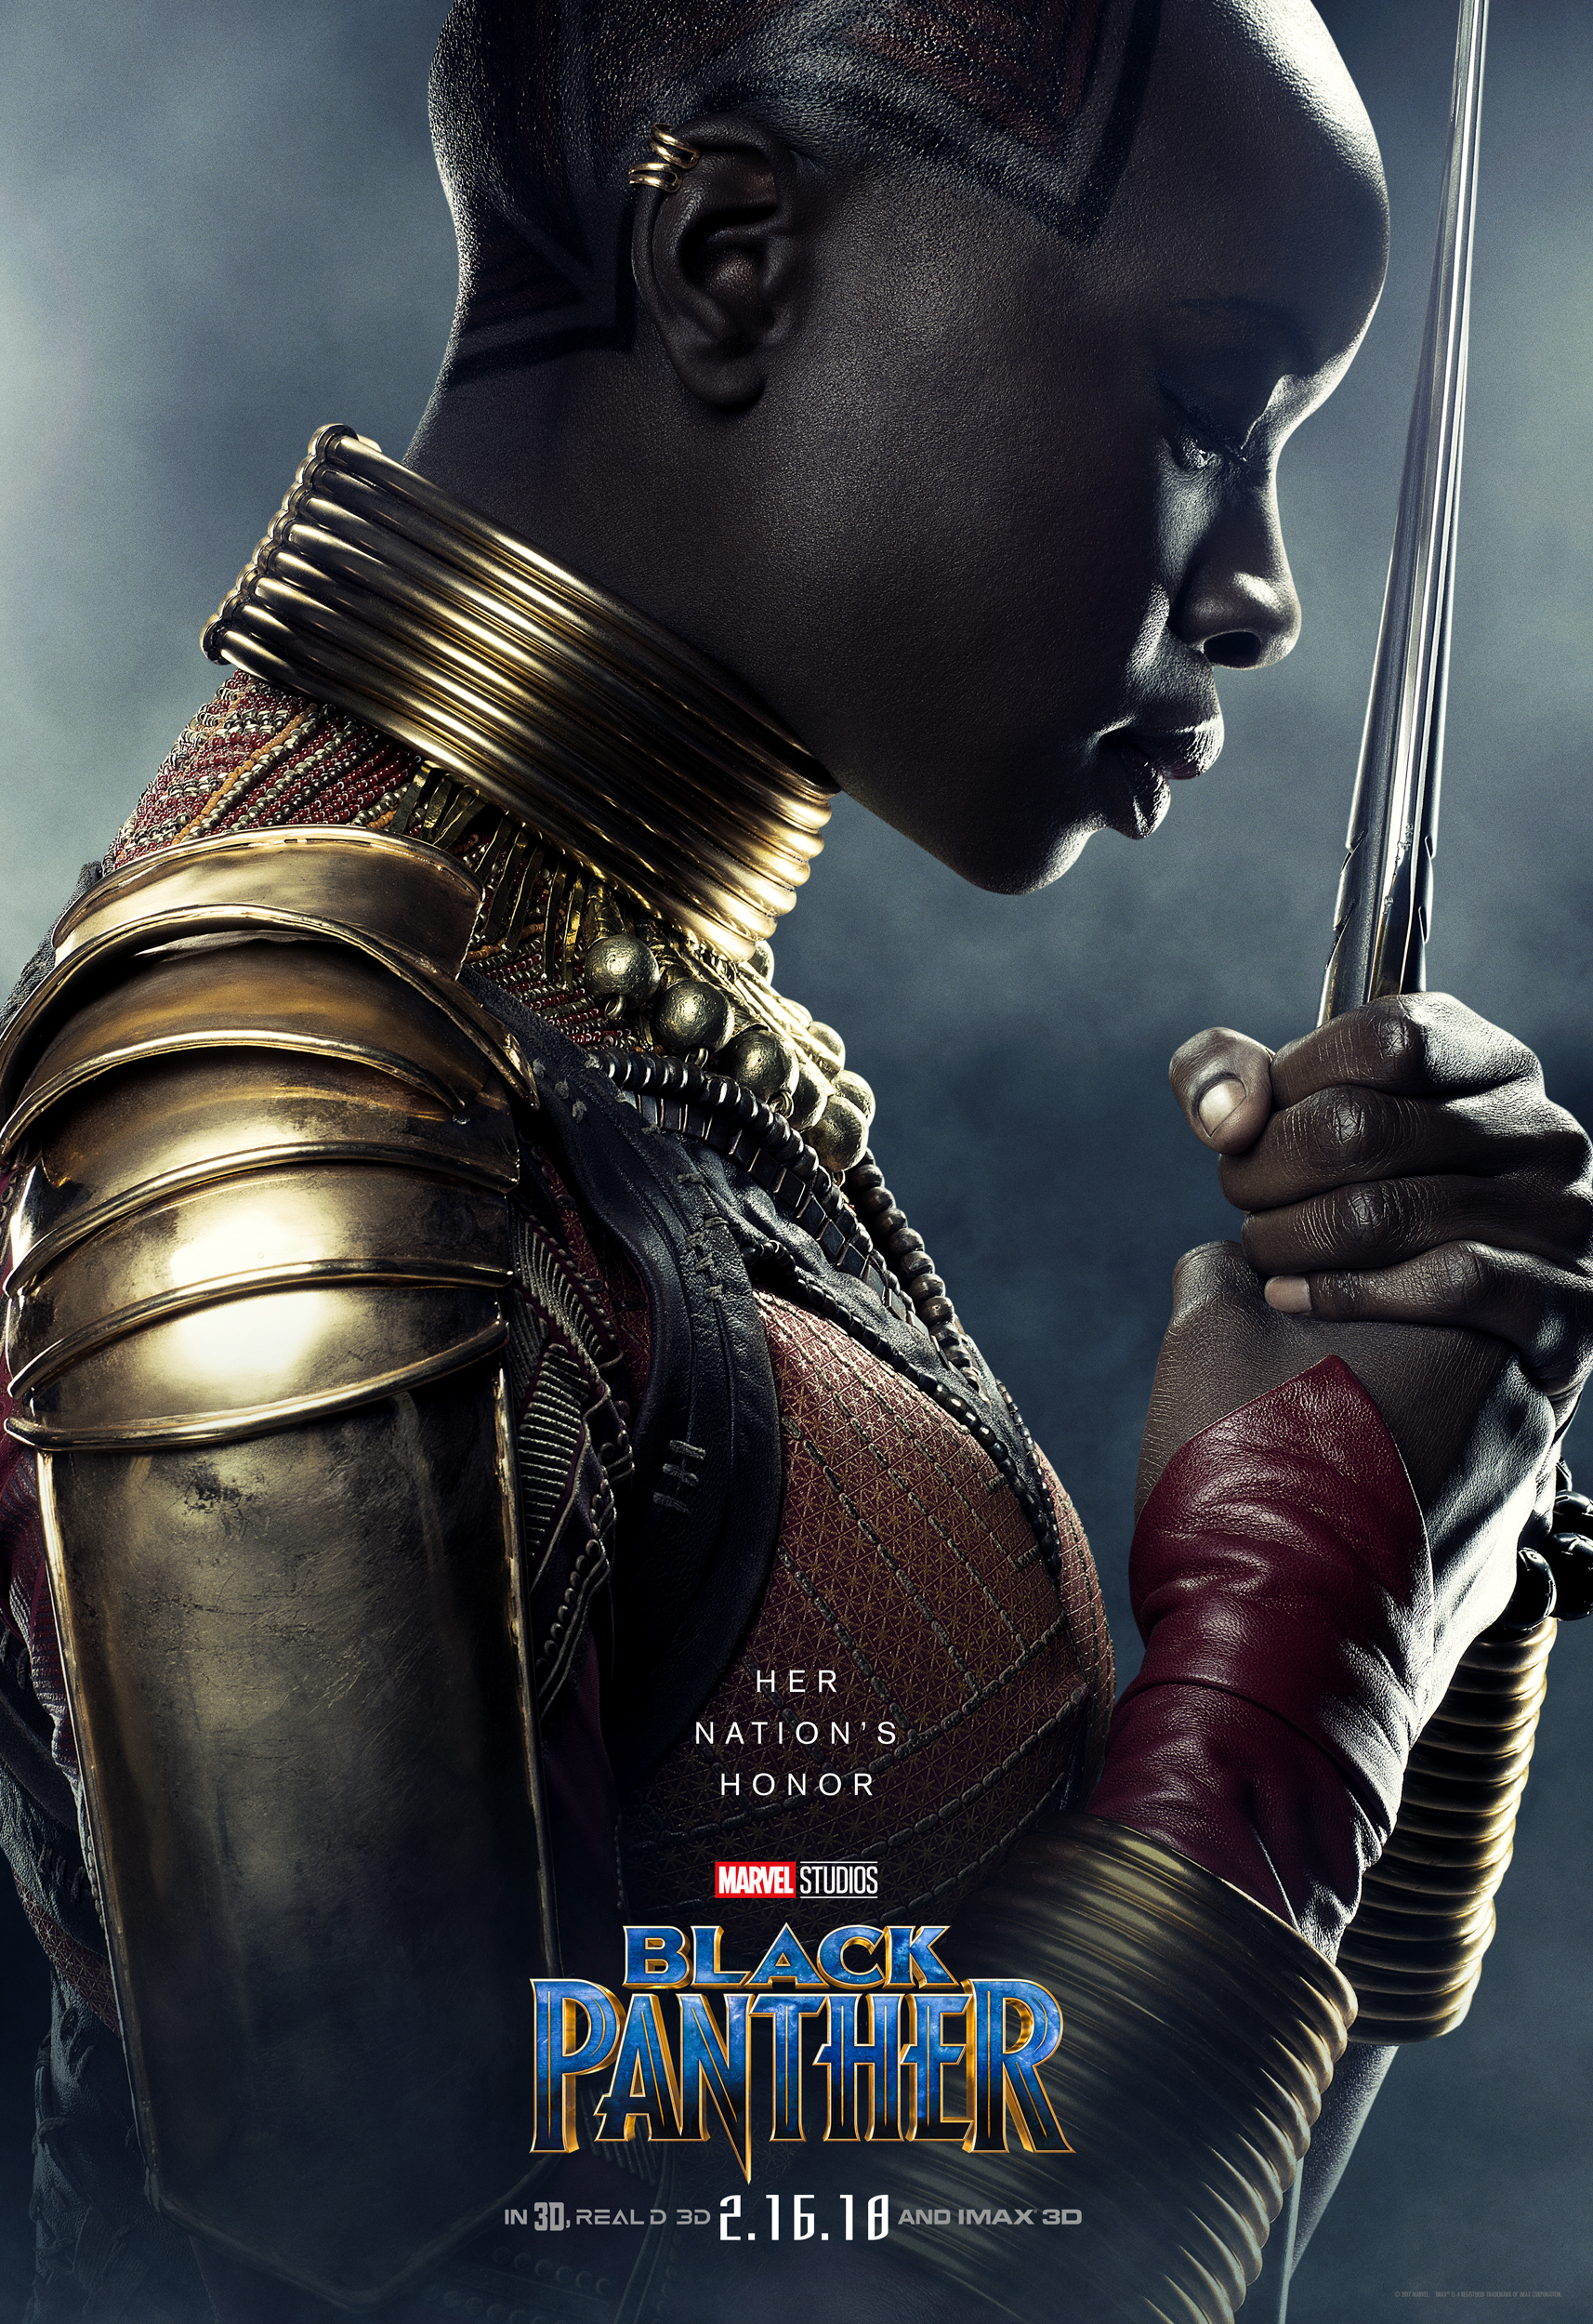 Lupita Nyong'o and Danai Gurira, Female Cast of Black Panther, Lupita and Danai Black Panther Interviews, Black Panther